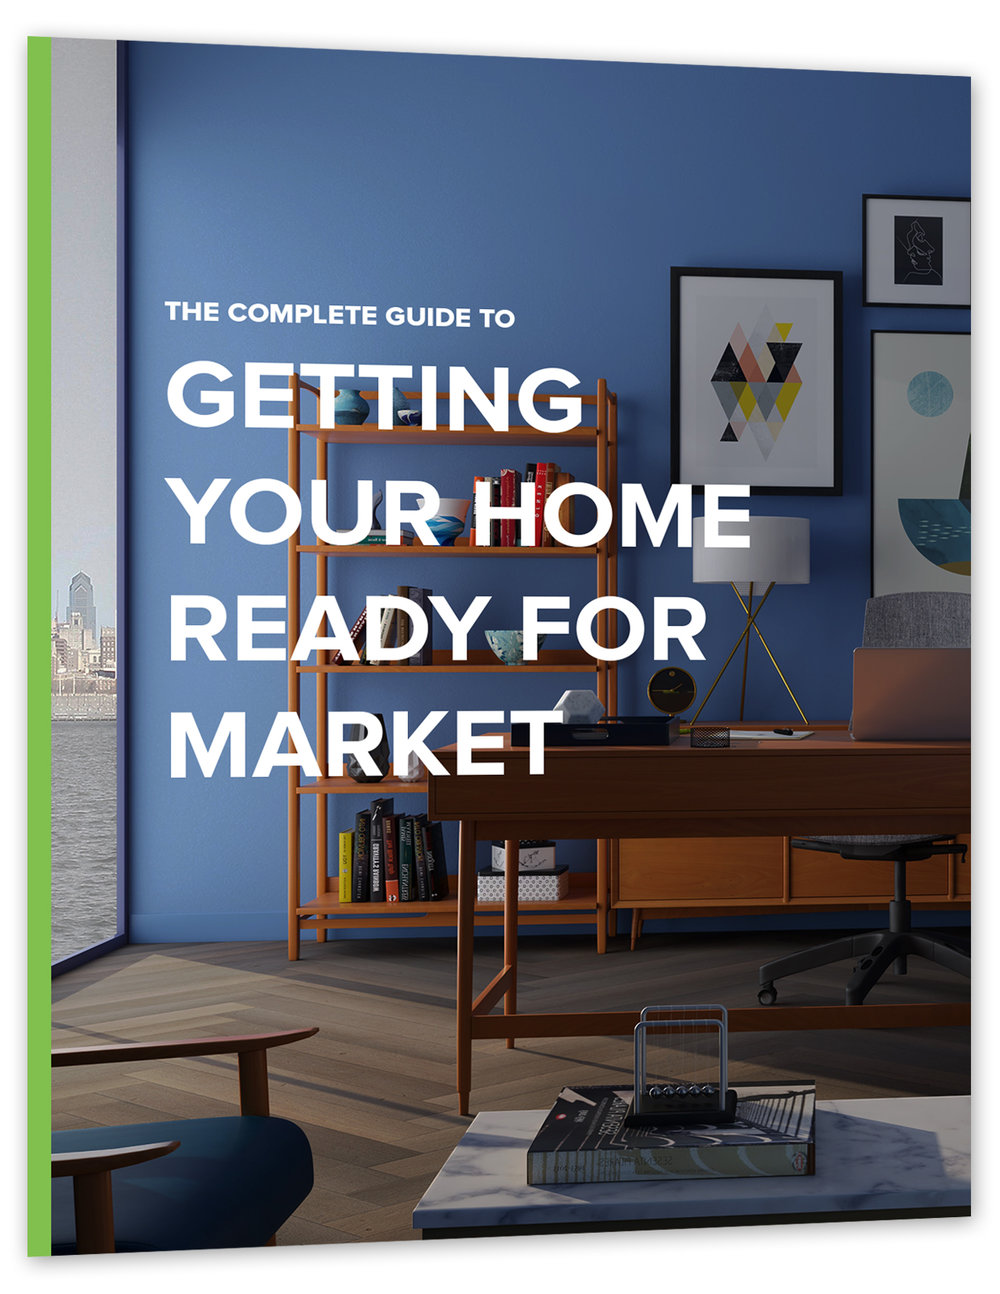 complete guide to getting your house ready for market free pdf download book cover.jpg